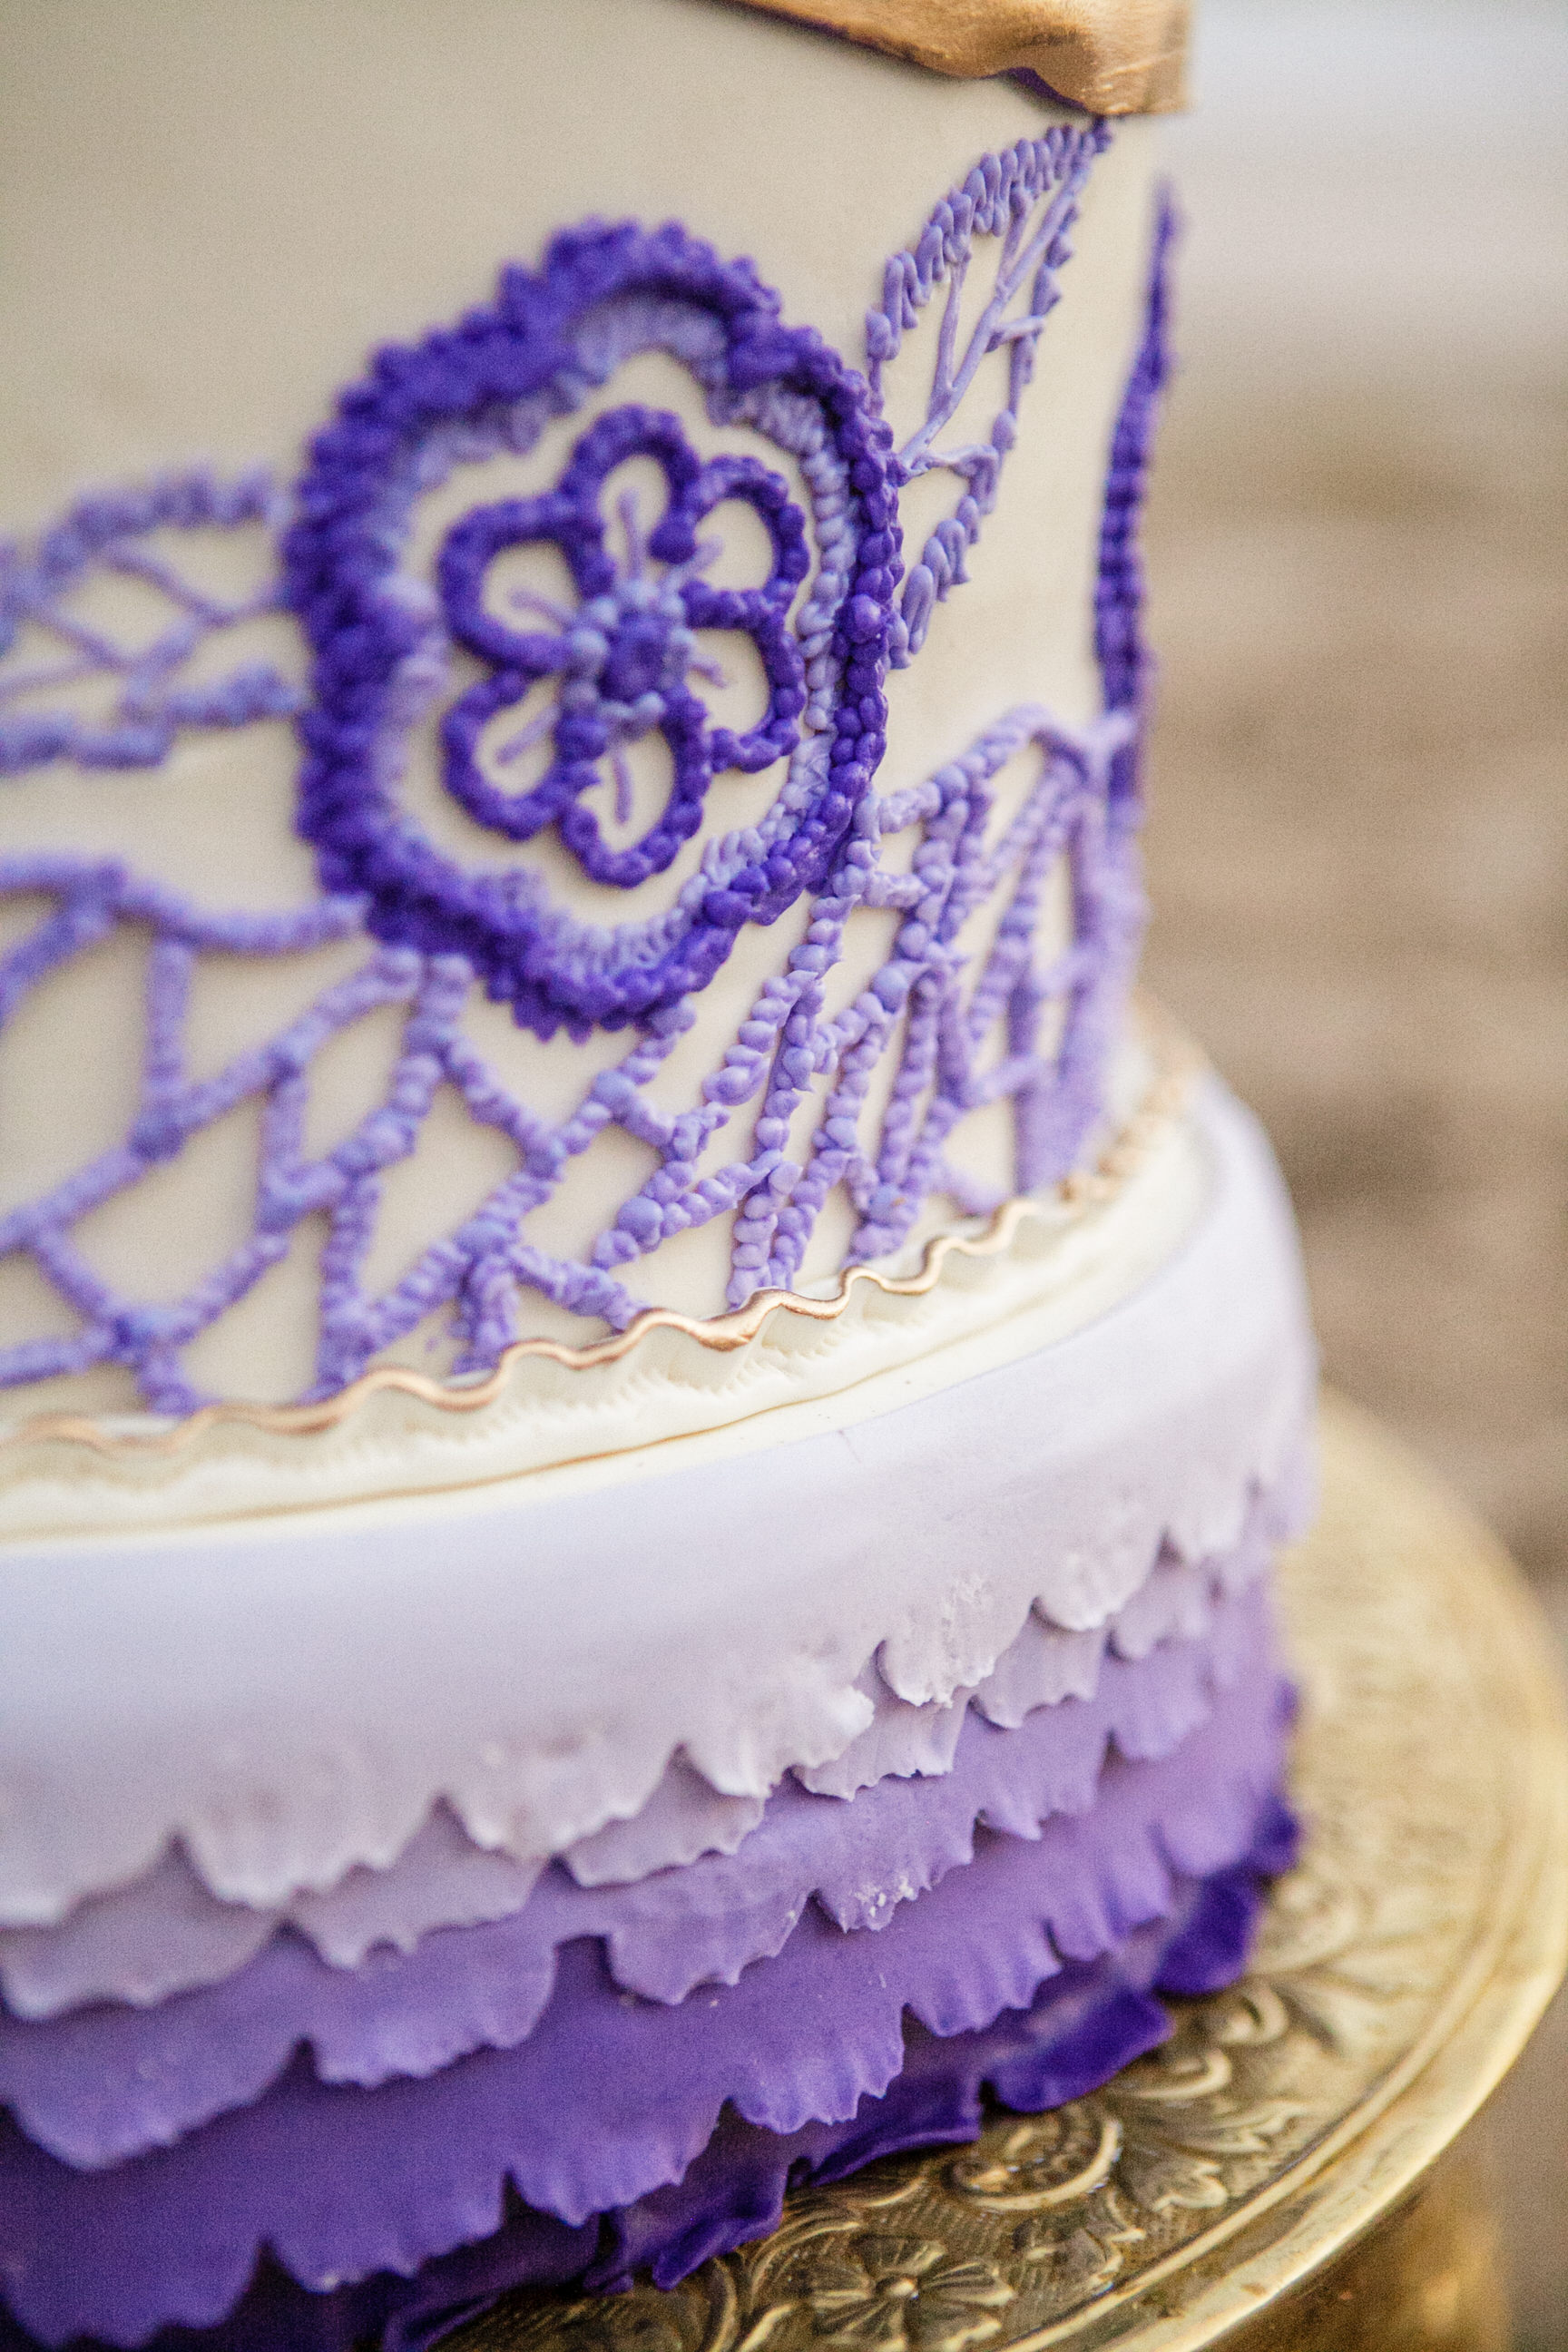 20 Destination Wedding Planner Desserts by Dana Ombre Cake Detail.jpg